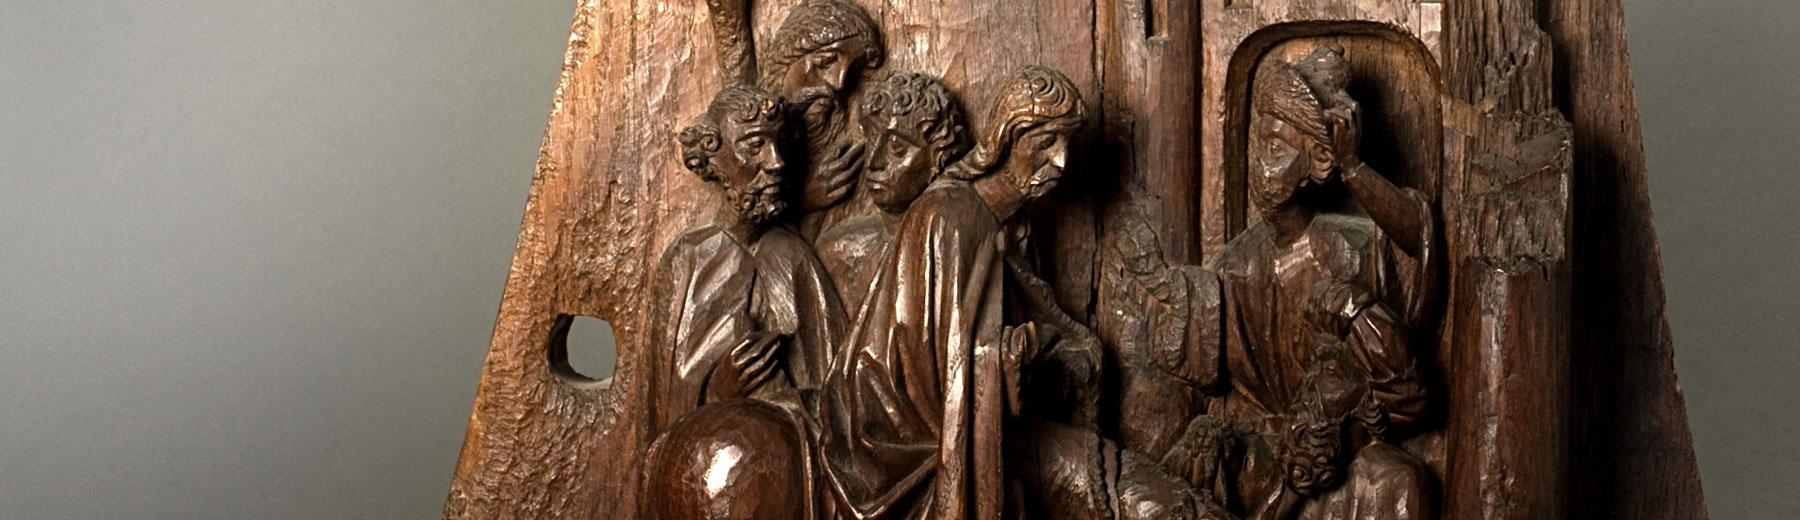 Willem Ards, The entry of Christ in Jerusalem, oak, Leuven, ca. 1448-49 (copyright: M - Museum Leuven | photography: Paul Laes)